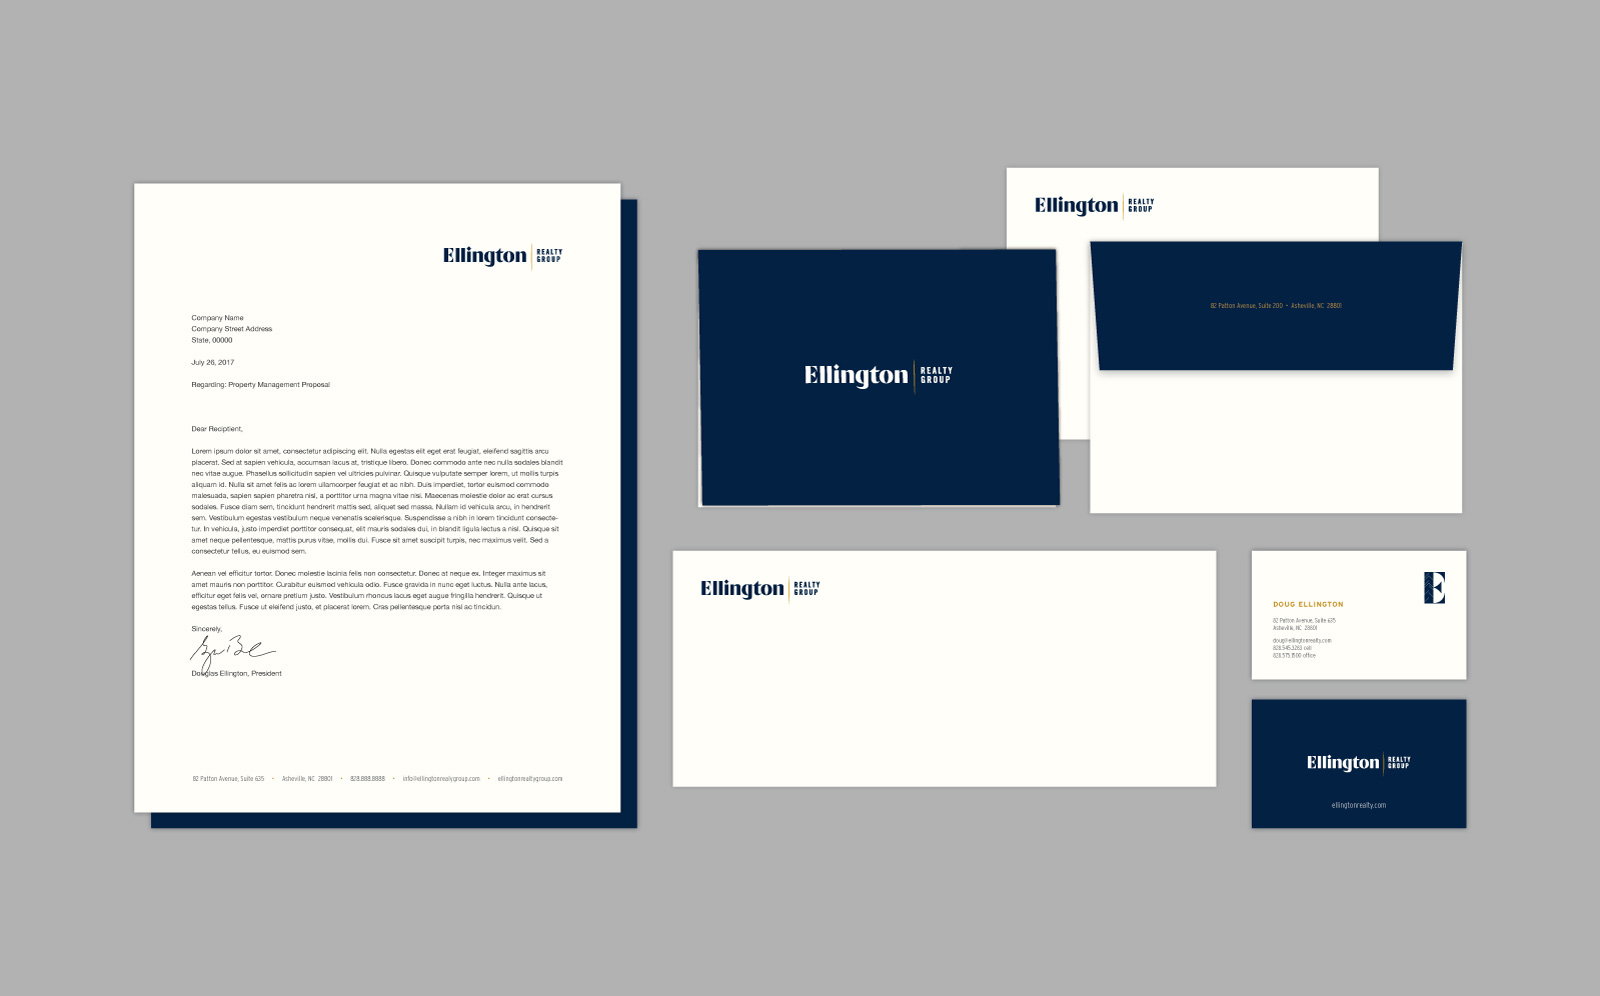 Ellington Realty Group stationery with letterhead, envelope, business card, and note card shown arranged on a gray background